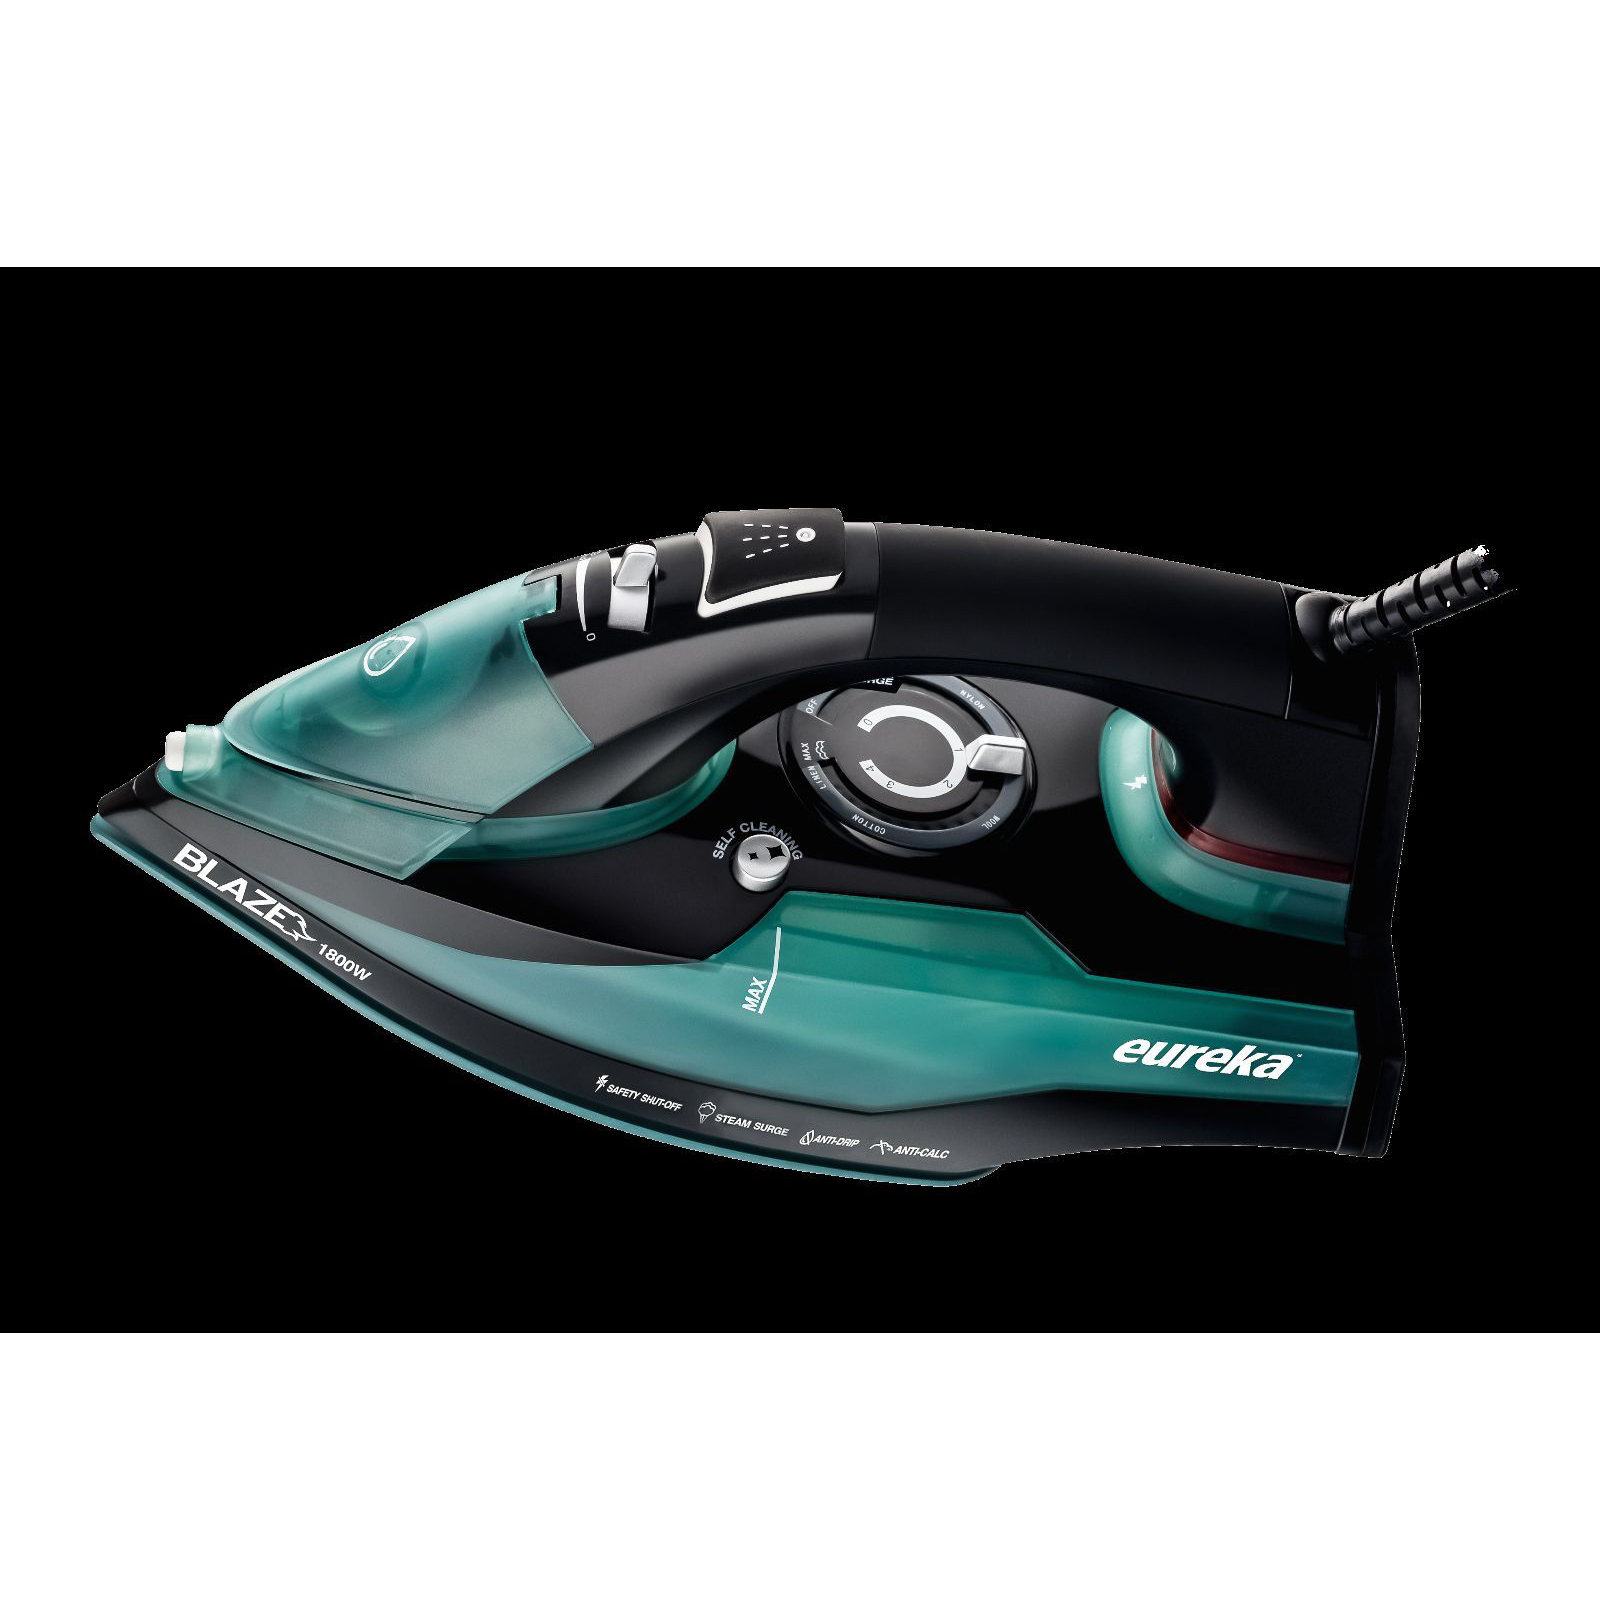 Eureka Blaze Original Ultra Hot 1800 Watt Iron Powerful Steam Surge Technology Aqua